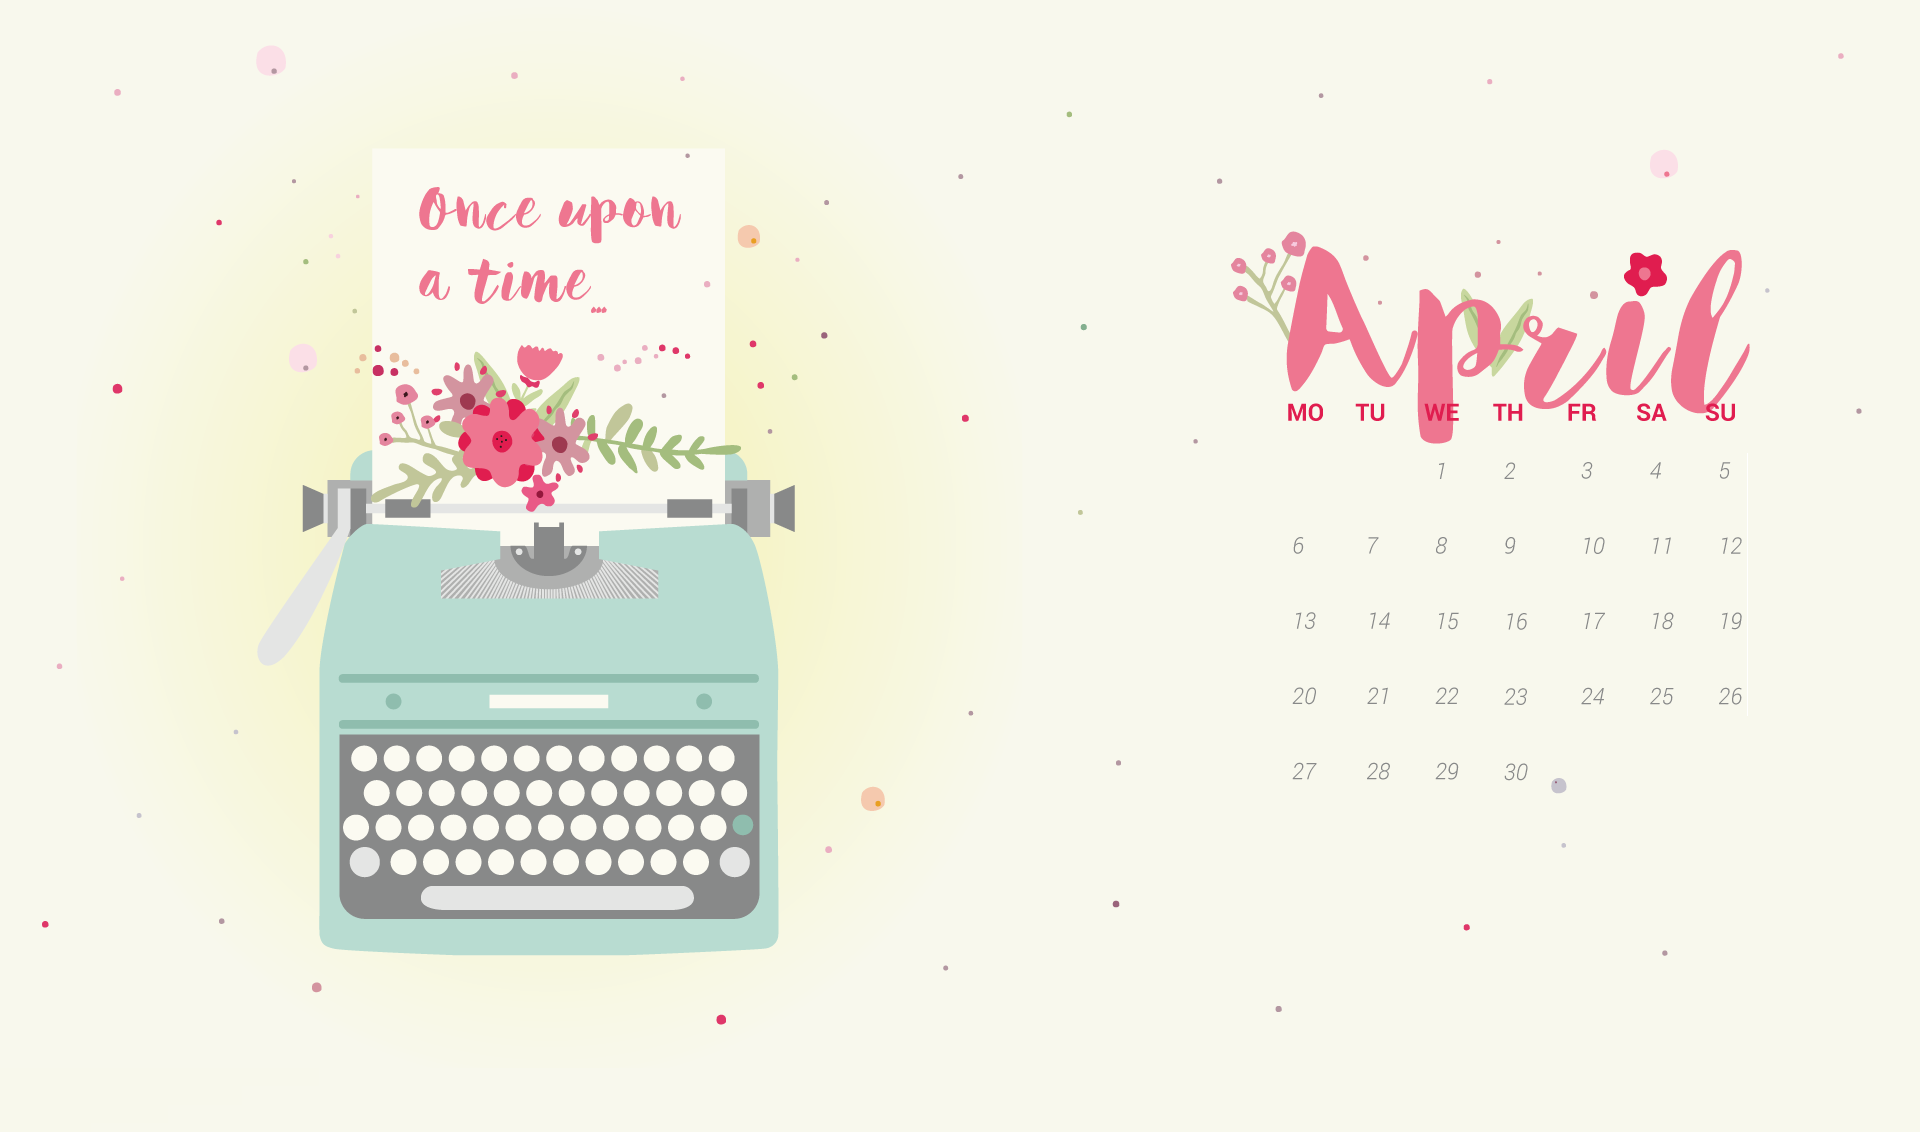 April 2020 Calendar Wallpapers Hd Background Images Photos